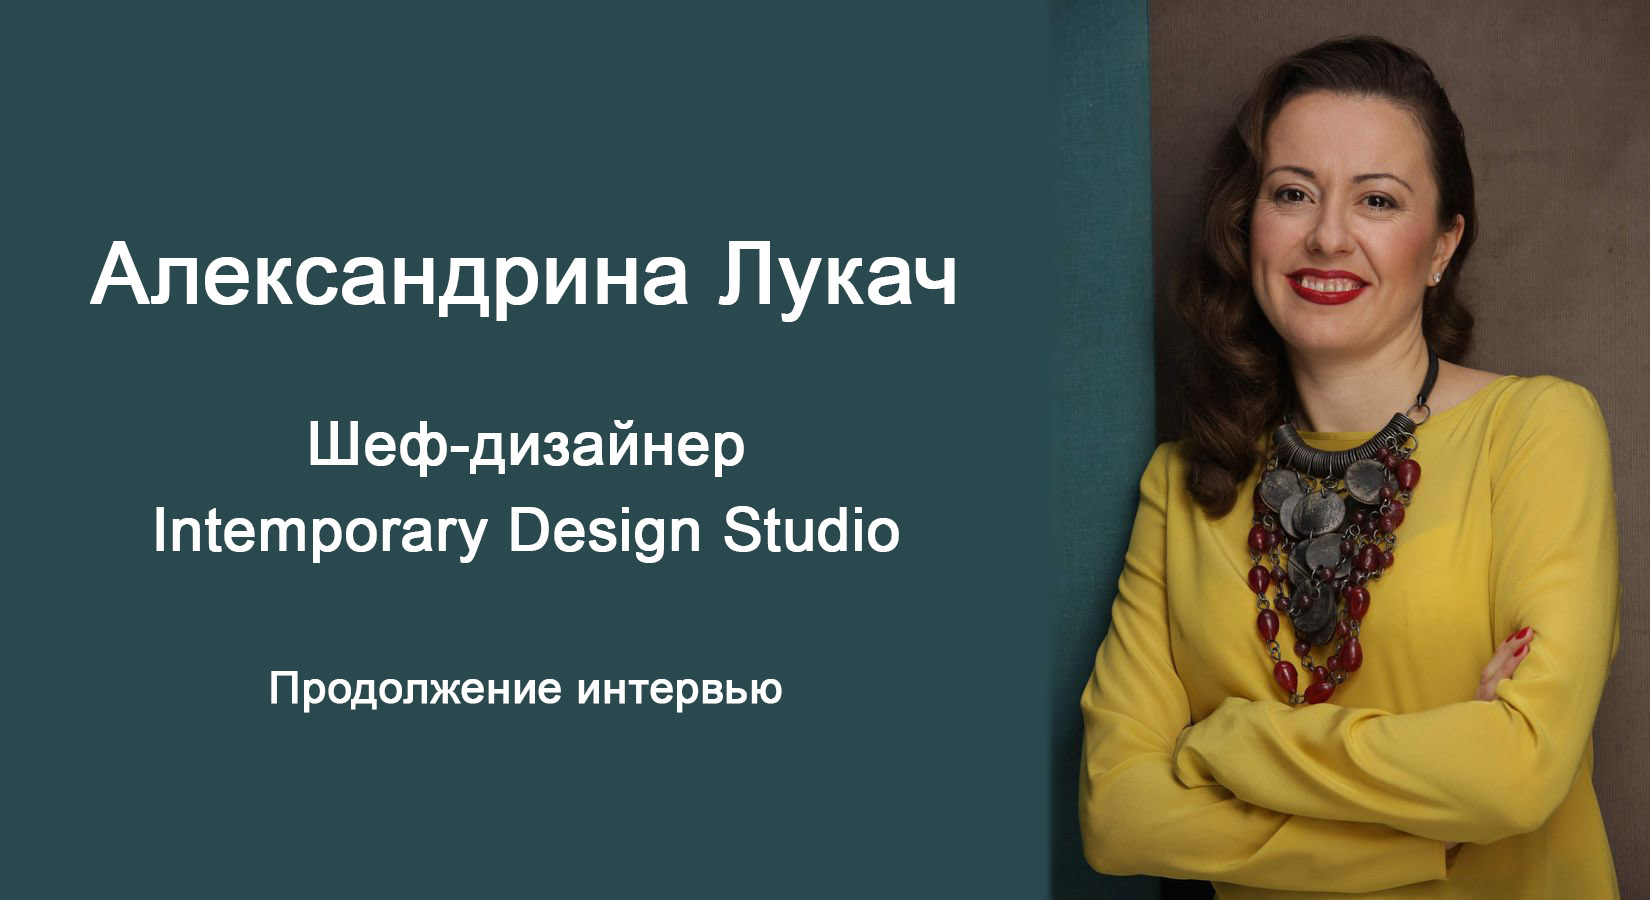 Интервью Александрины Лукач (Intemporary Design Studio) бренду DAVIS CASA. Часть 2